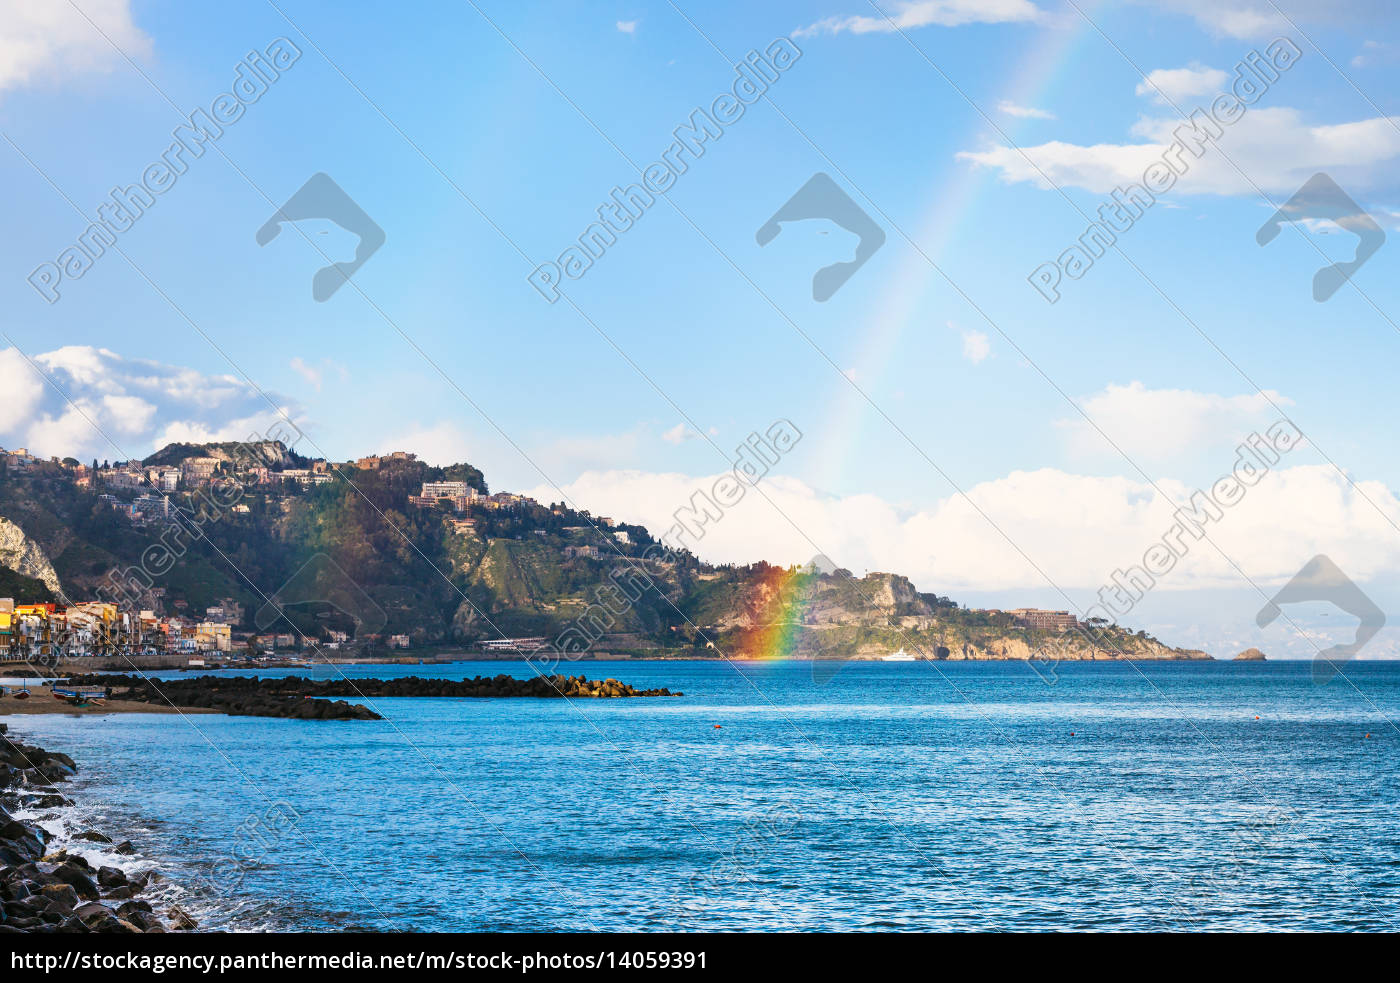 giardini, naxos, resort, and, rainbow, in - 14059391